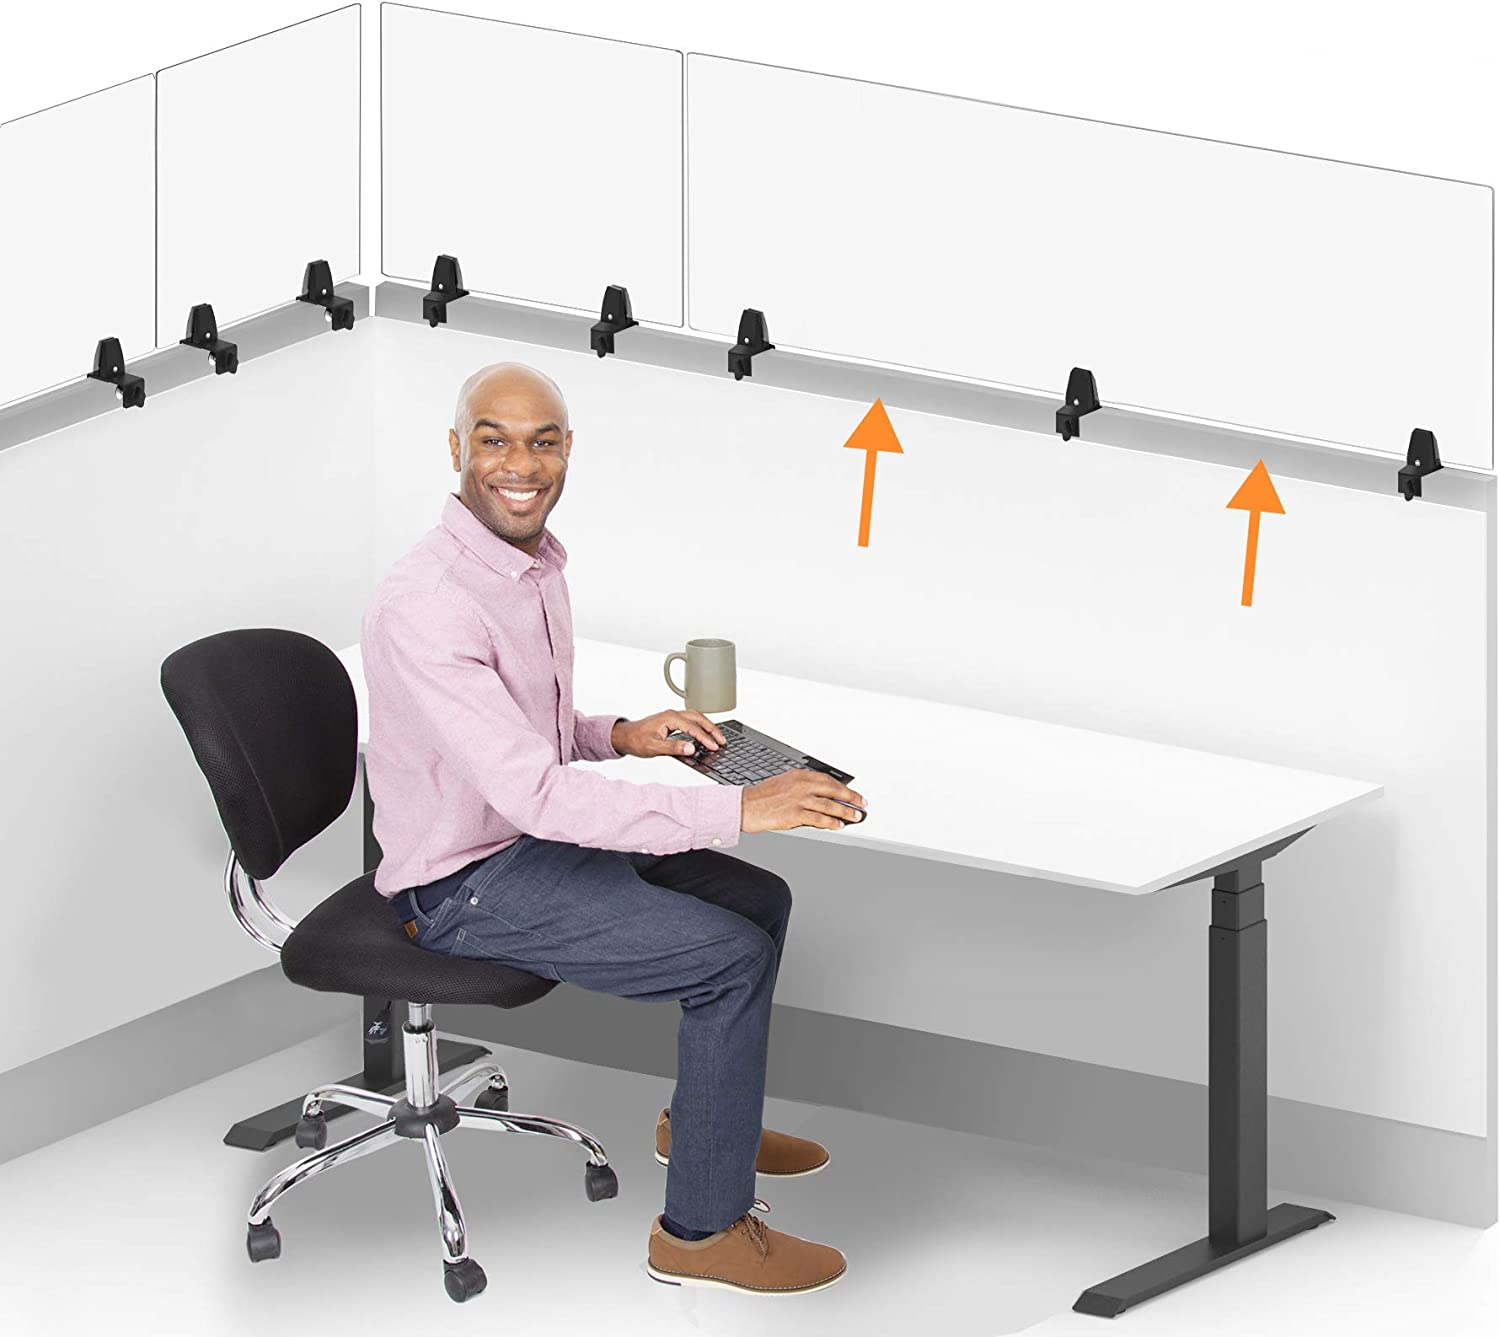 Stand Steady Clear Cubicle Wall Extender | Single 60 in x 24 in Panel | Clamp On Acrylic Shield & Sneeze Guard | Portable Desk Divider for Desk Walls & Cubicles | for Offices, Libraries & More